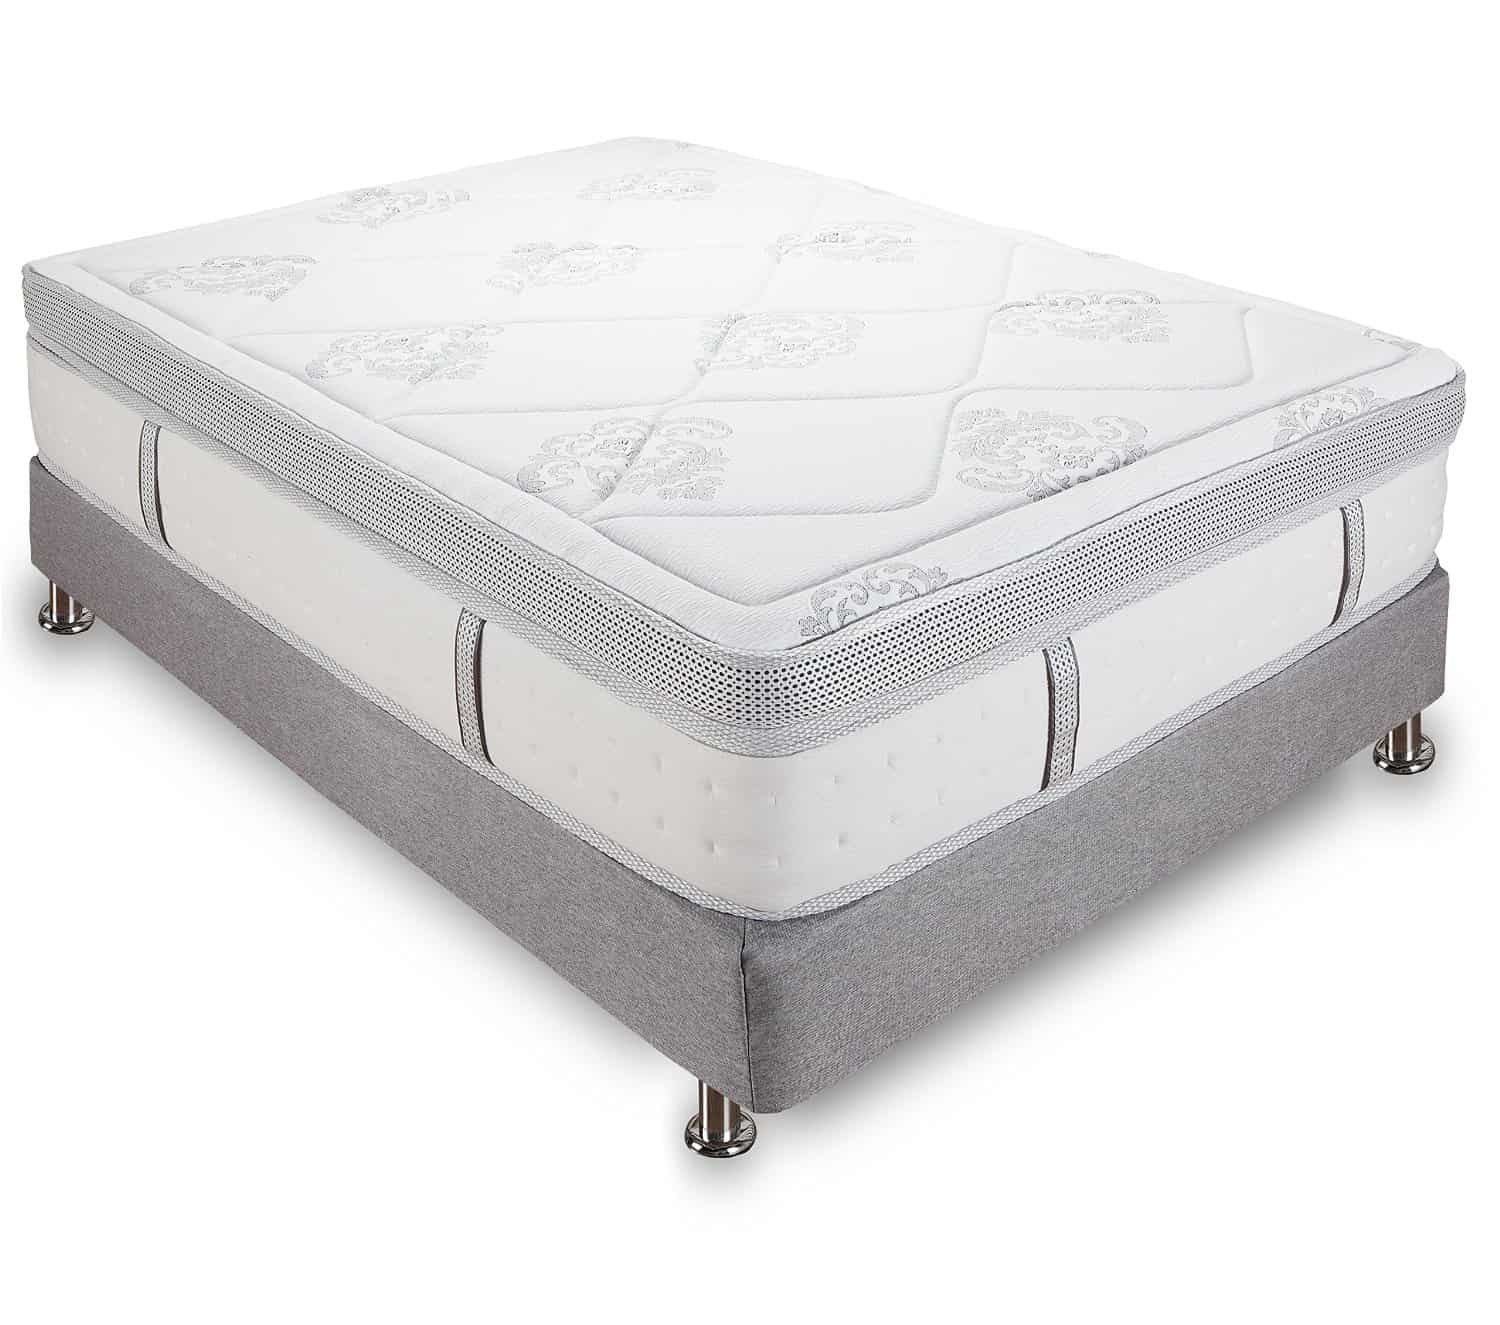 s dynastymattress gel adjustable memory mattress with beds cape platt system leggett com cool home set dp delivery breeze inch in coolbreeze amazon foam sleep free